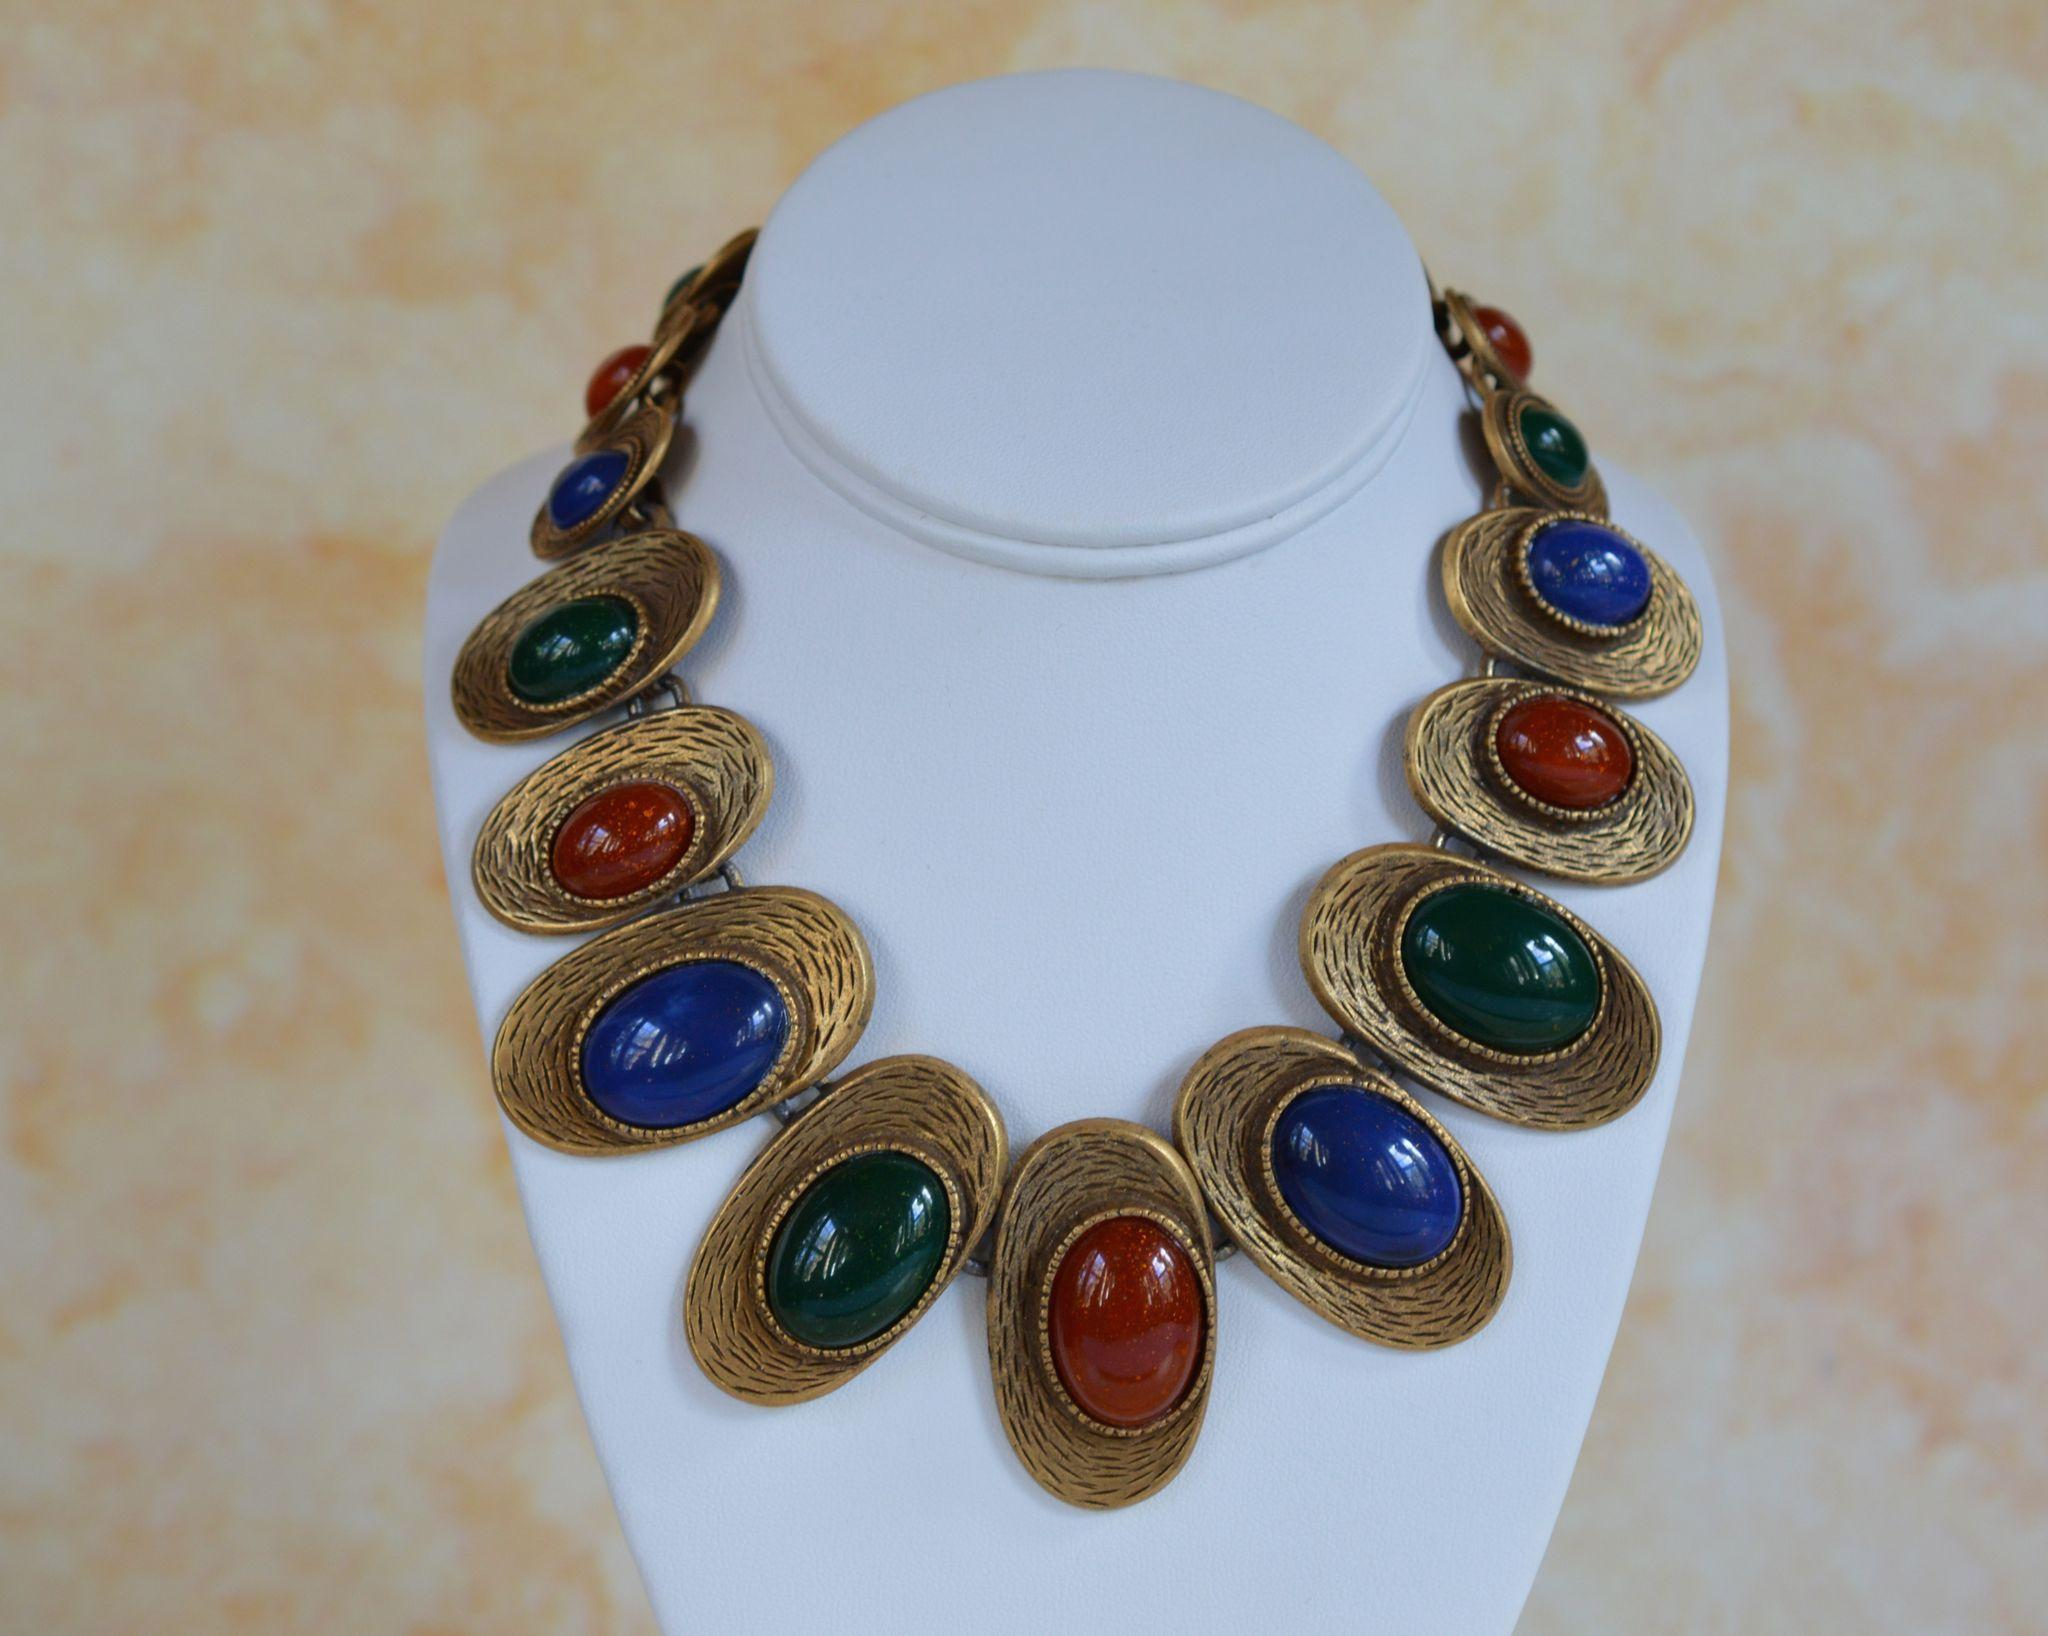 Les Bernard Necklace - Egyptian Revival